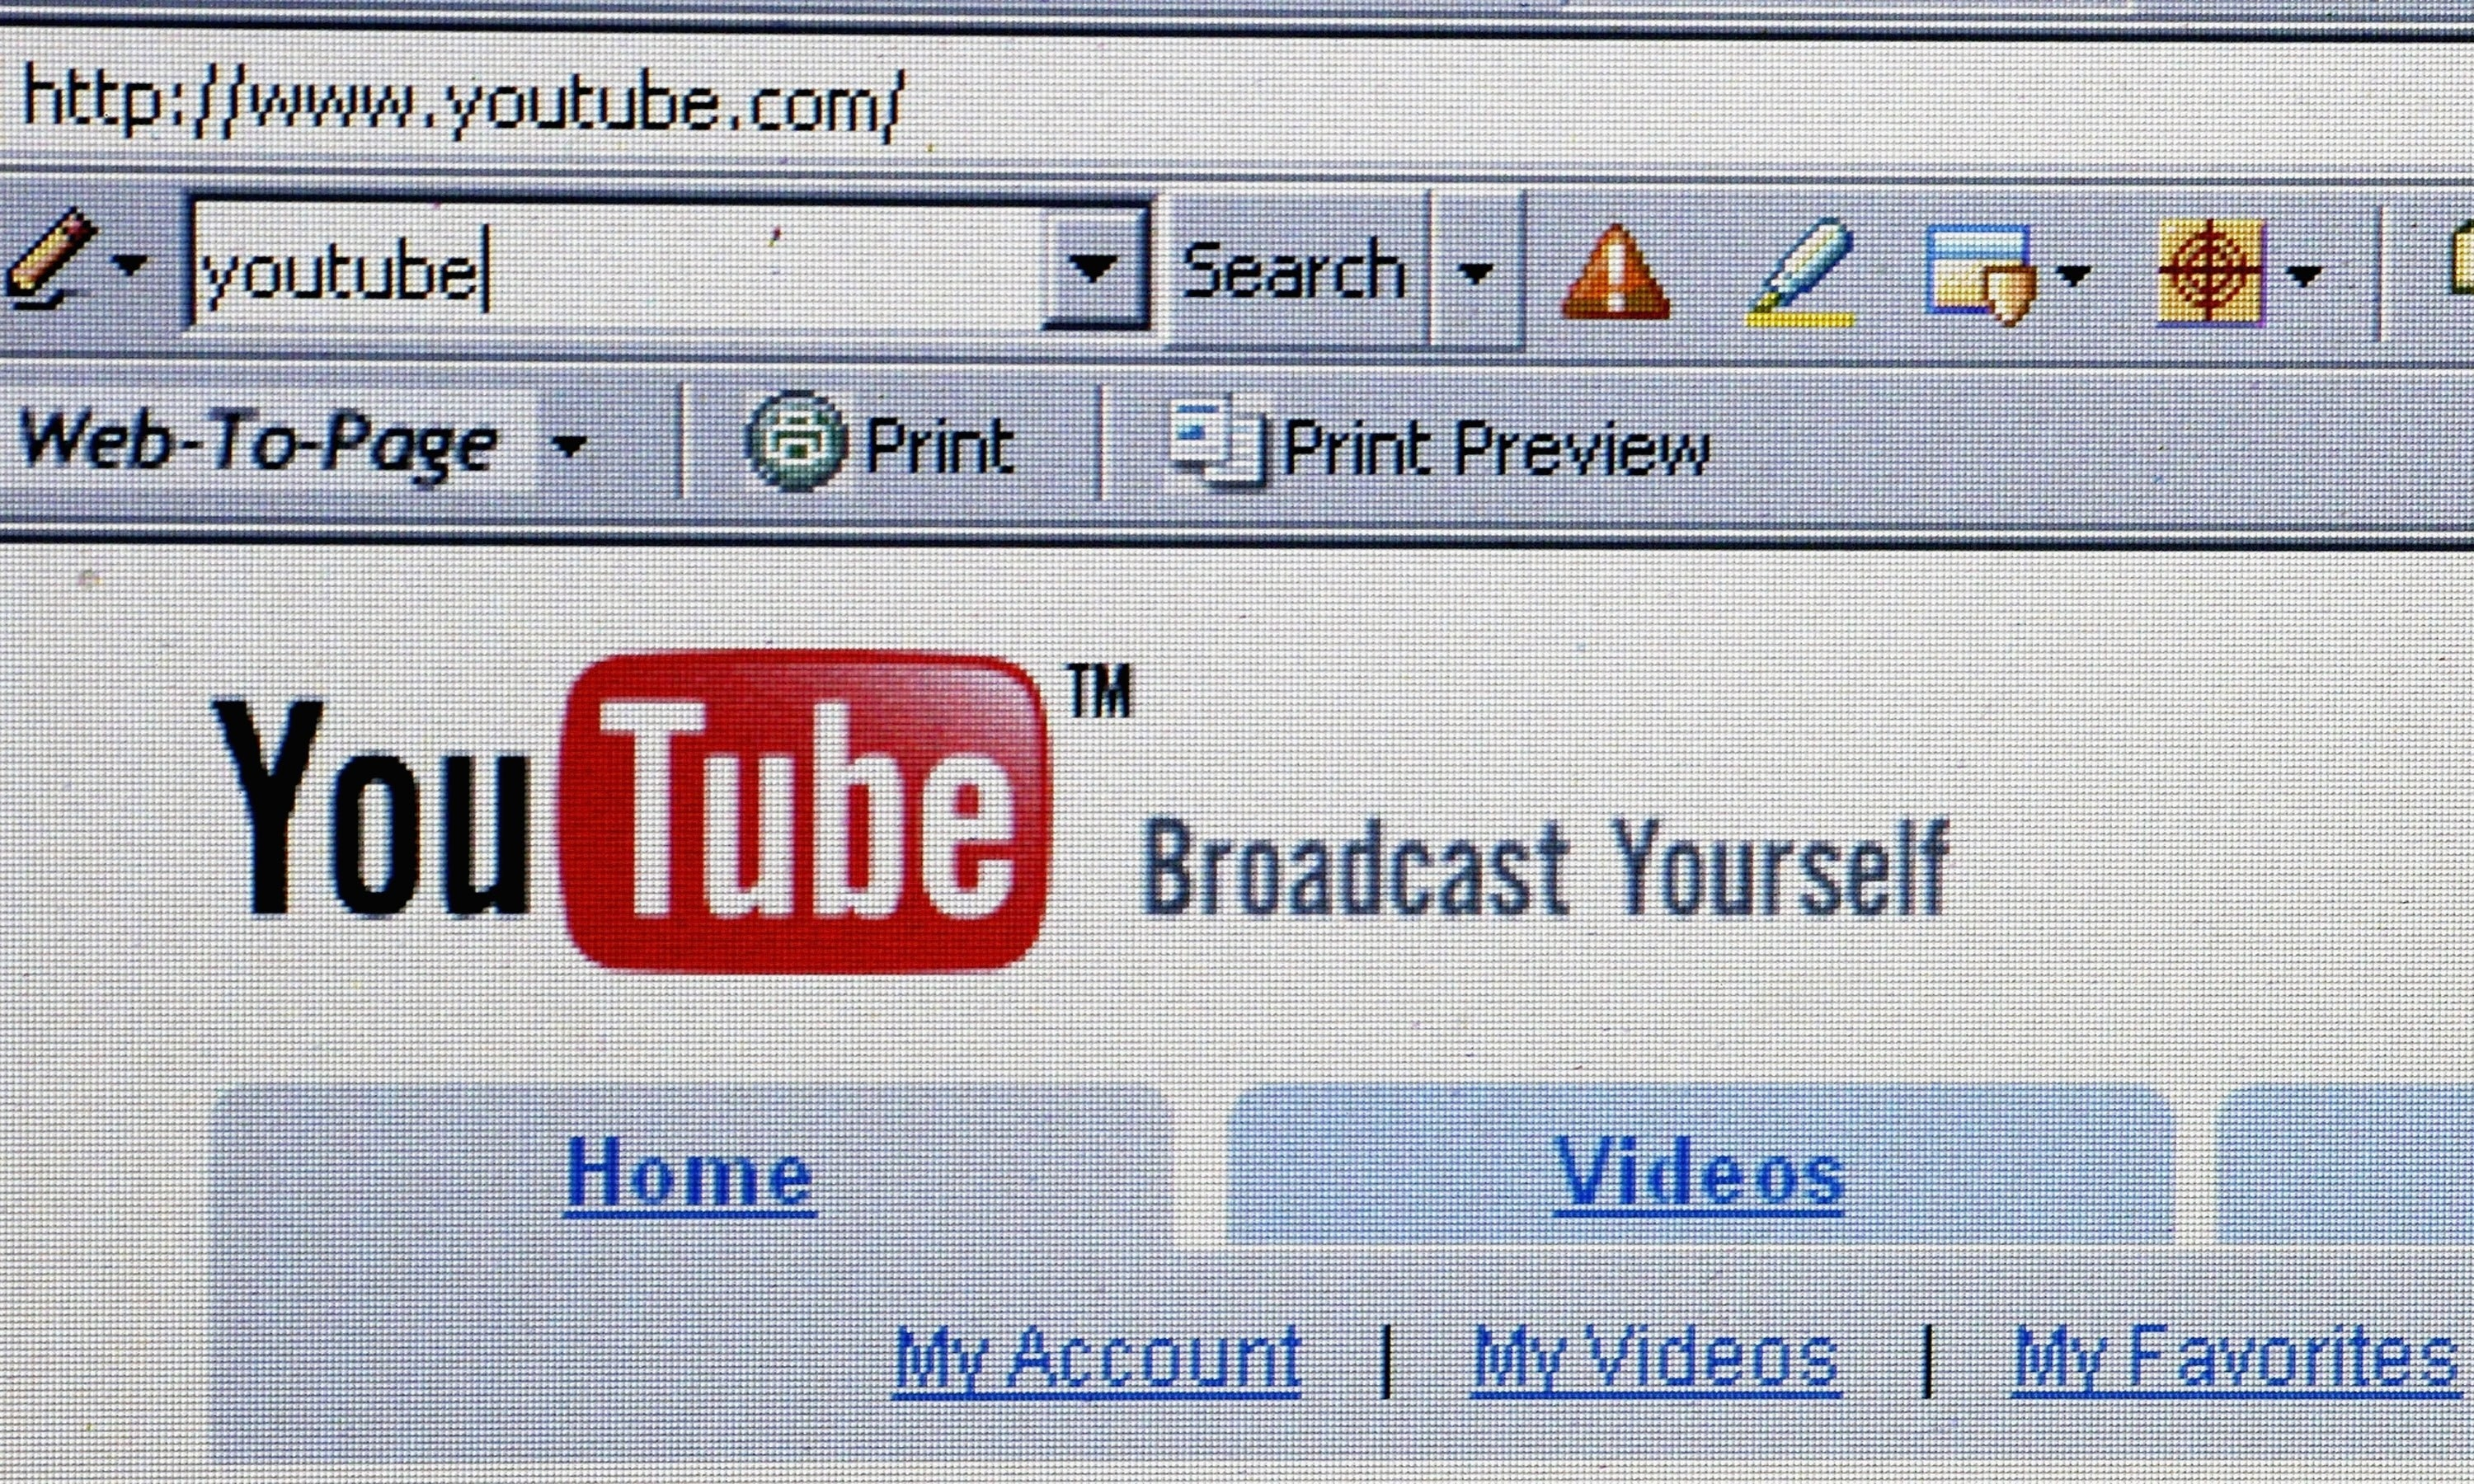 A photo of someone searching YouTube in 2006